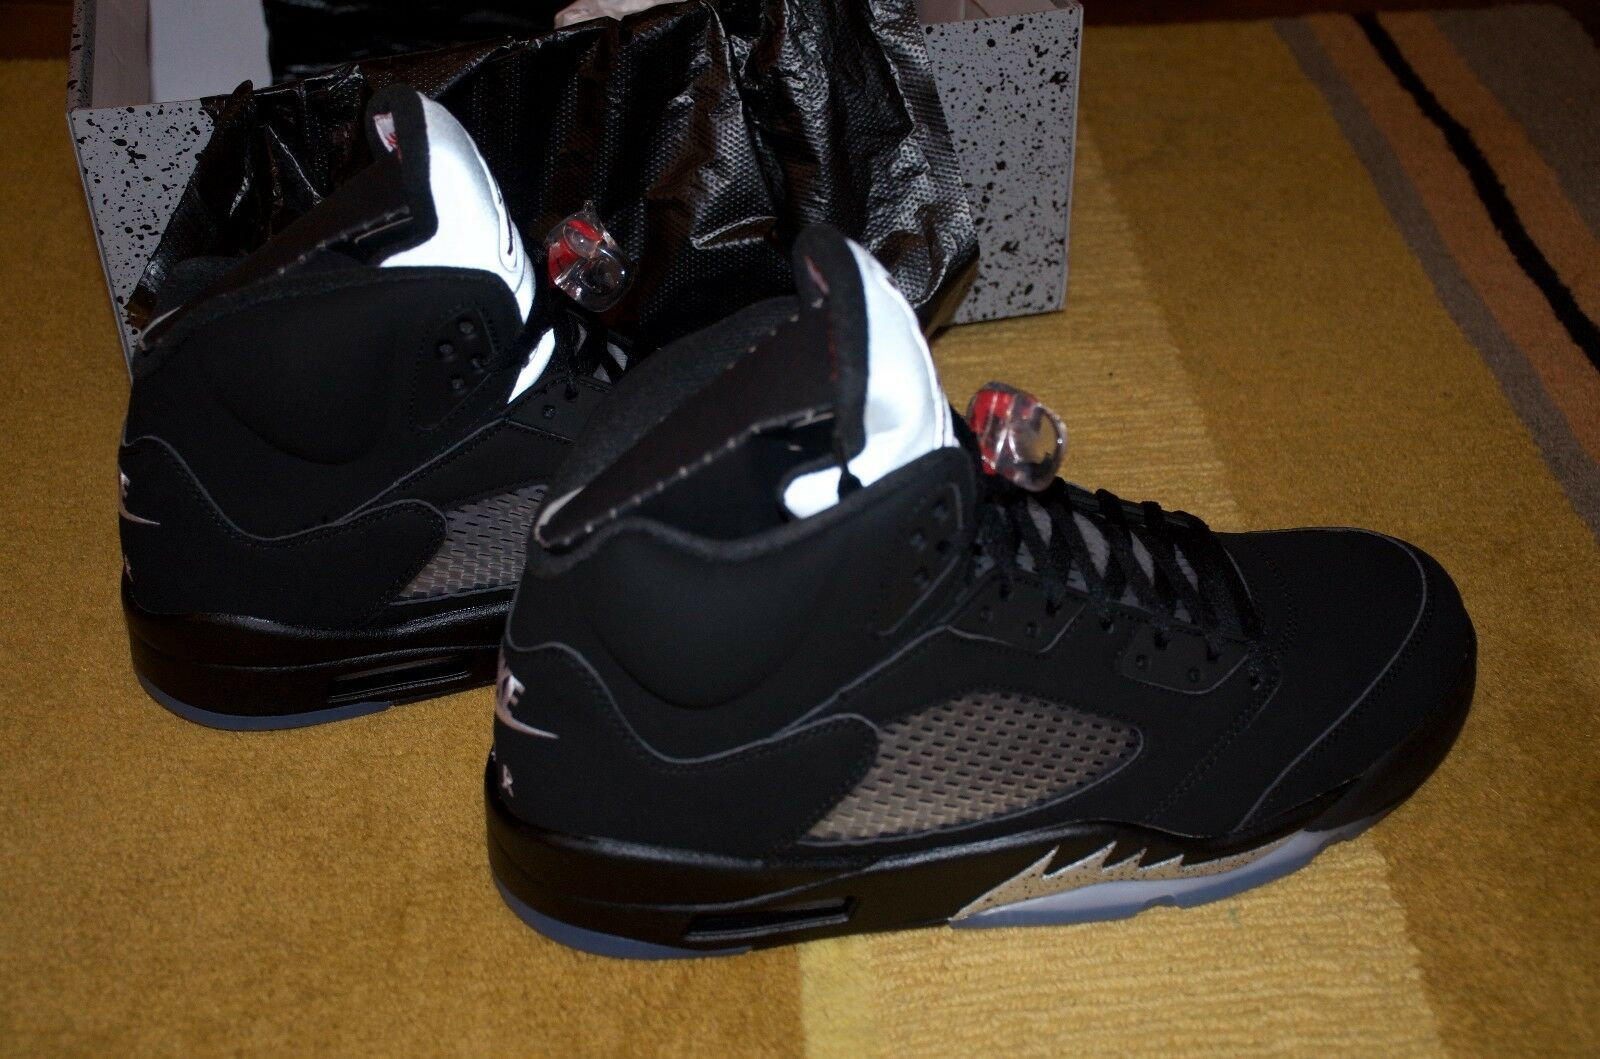 new styles 790d3 60c79 ... norway nike air jordan 5 retro og size brand 13 nero fire red brand  size new